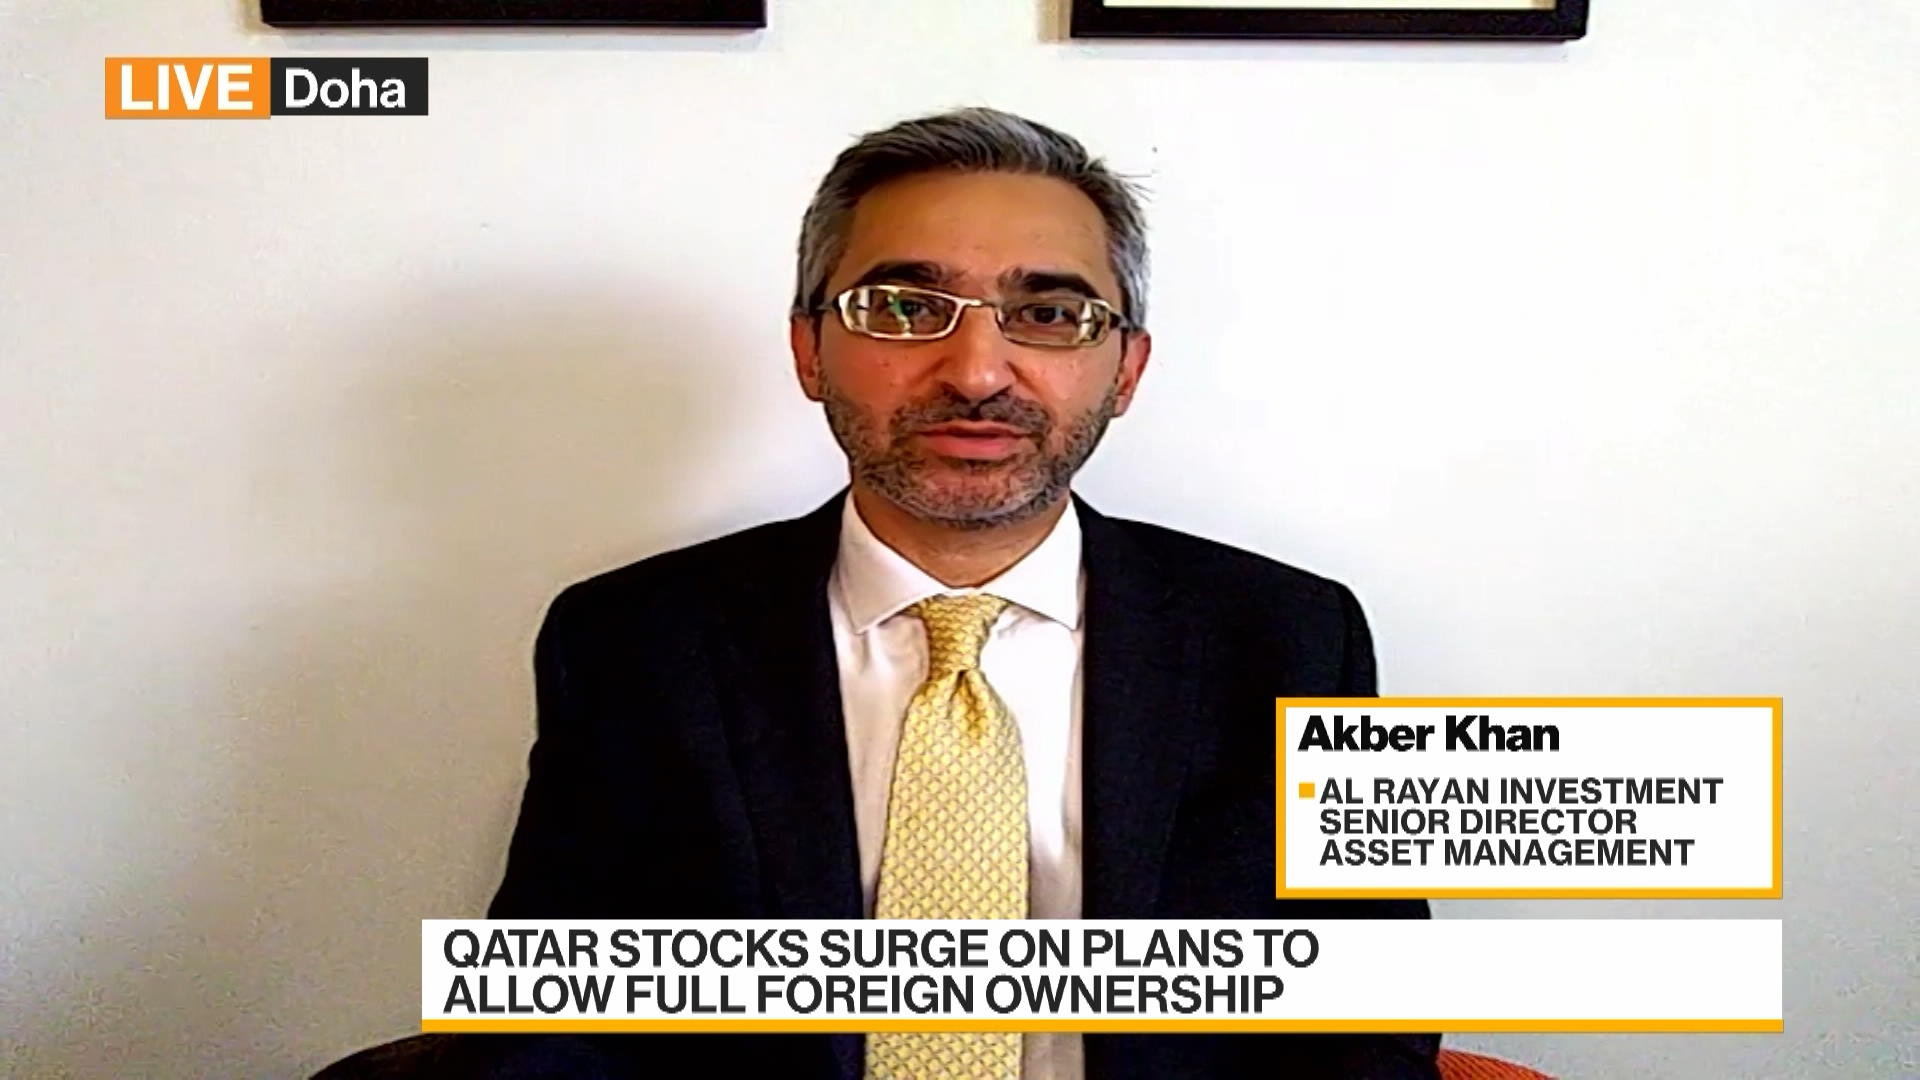 Al Rayan Investment's Khan on Qatar's Plans to Allow Foreign Ownership of Stocks, Iran Nuke Talks